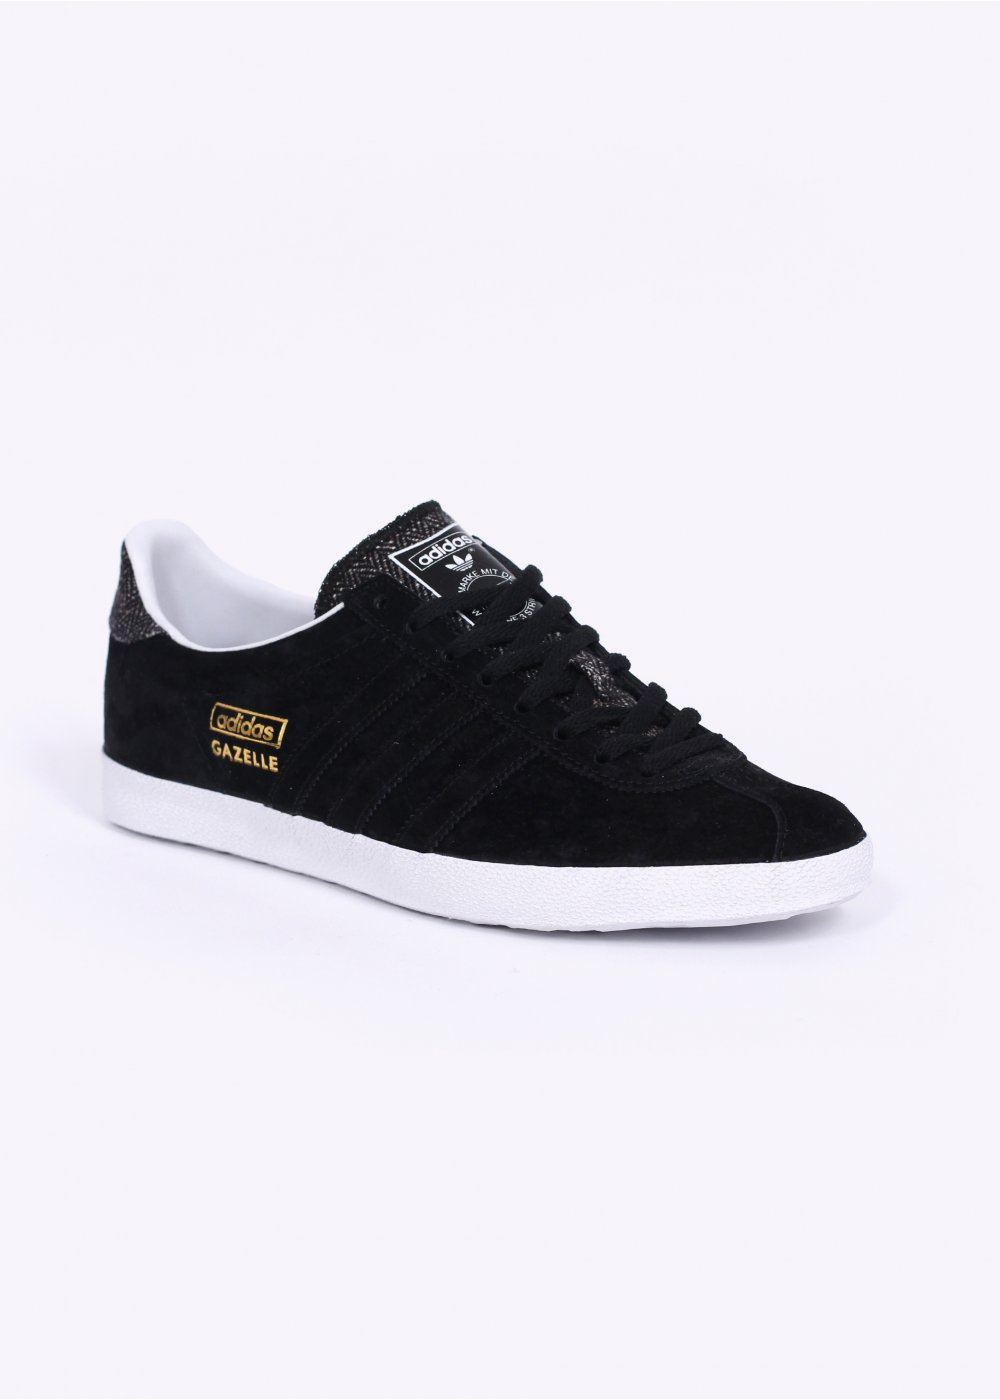 Adidas Originals Gazelle Og Black Shoes